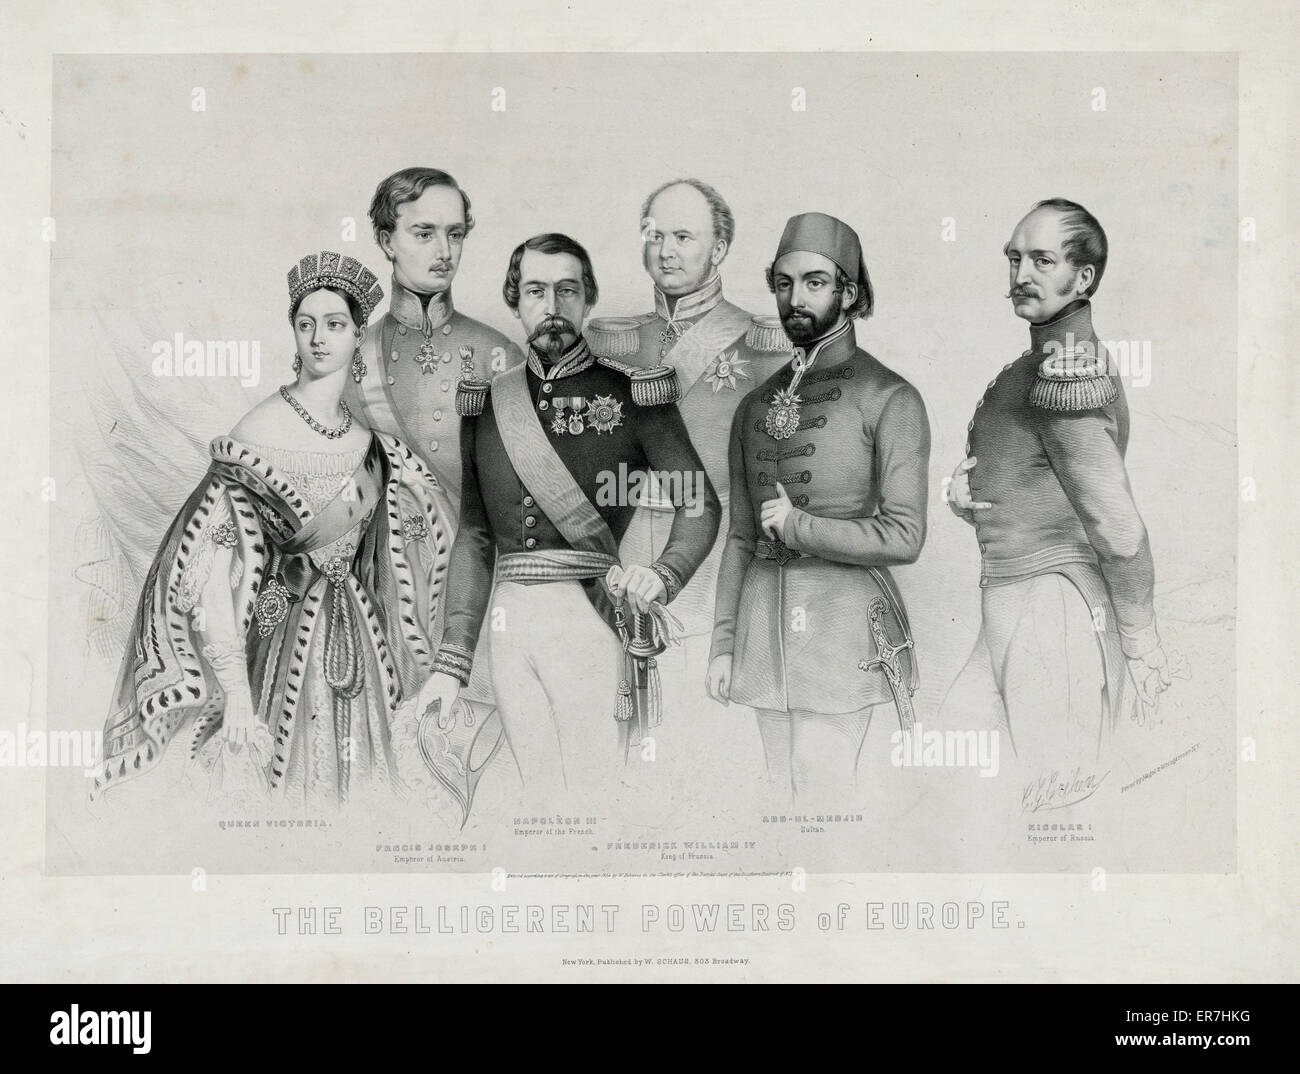 The belligerent powers of Europe. Date c1854 April 5. - Stock Image